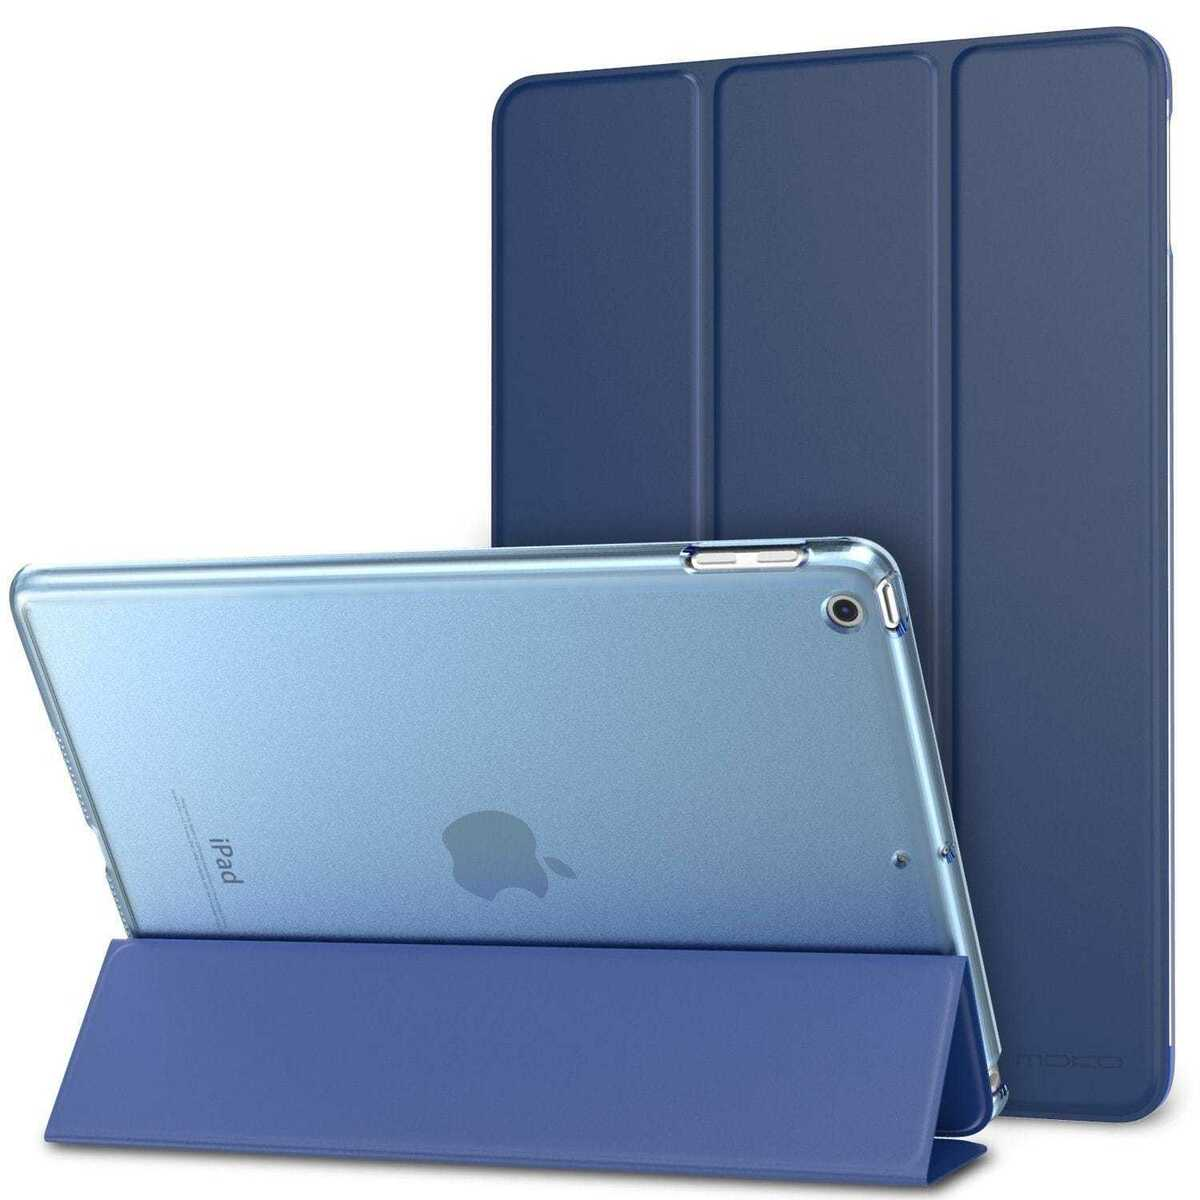 Smart cover integrale custodia supporto per apple ipad 9 7 2018 blu 